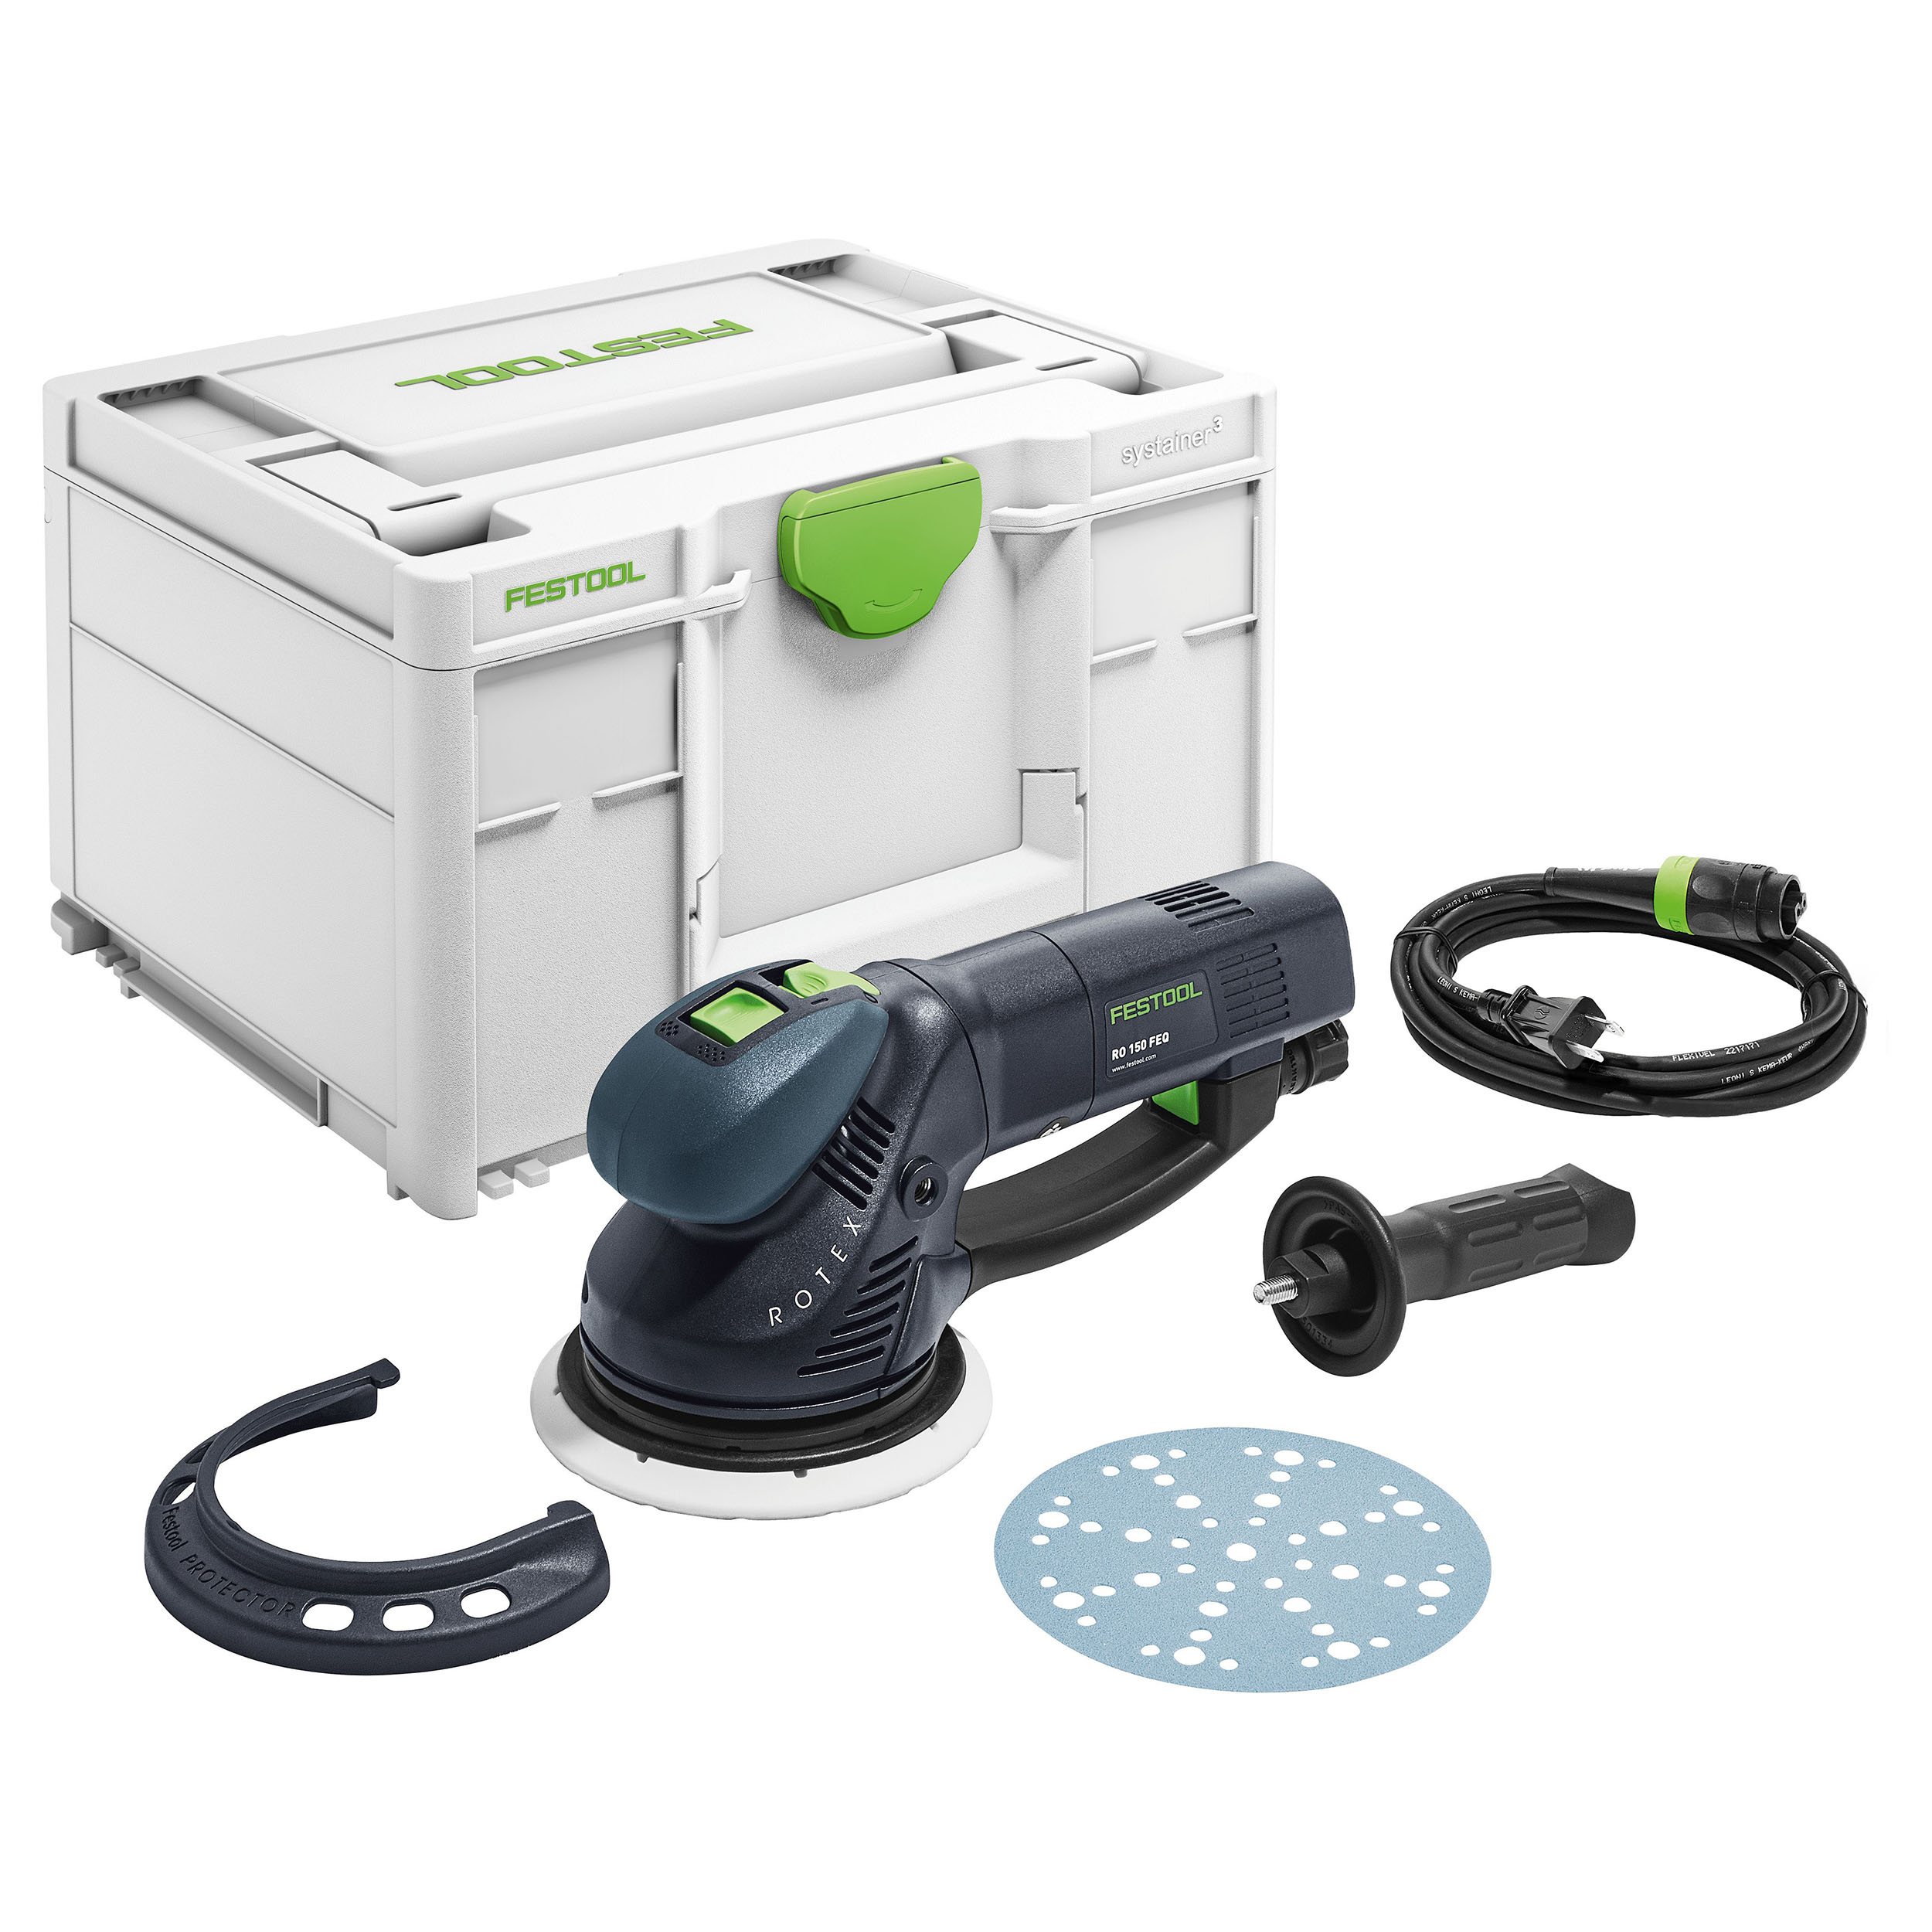 Rotex RO 150 FEQ-Plus Sander in systainer?